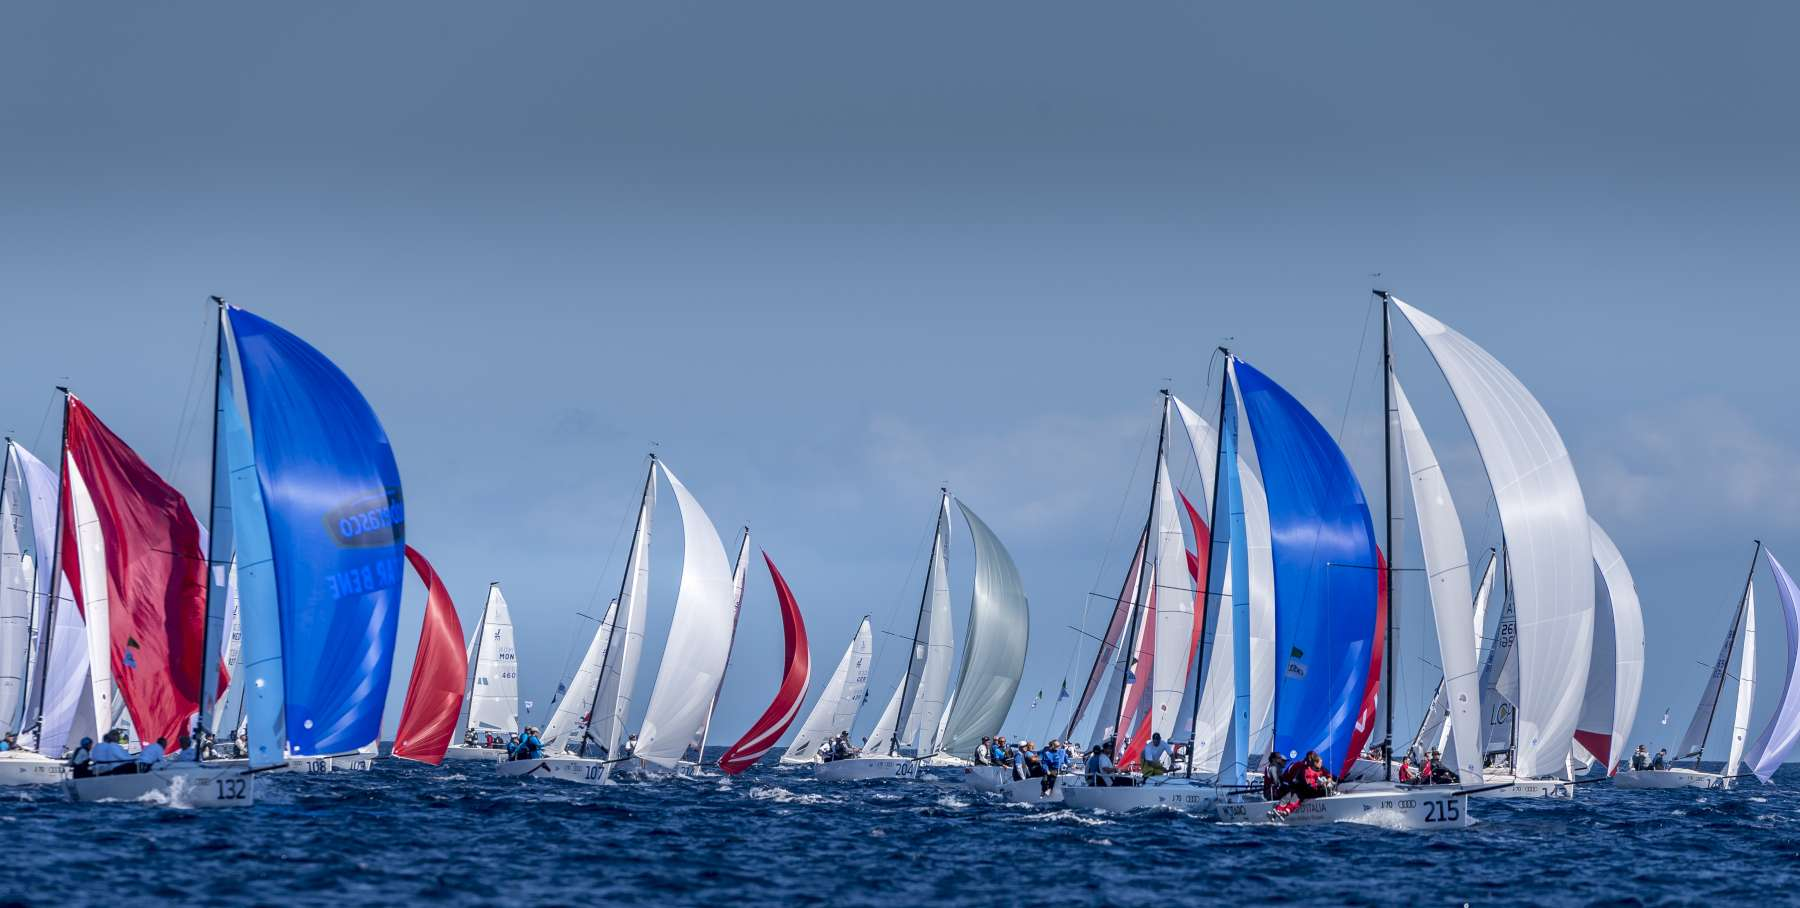 Trailer YCCS Stagione 2018 online - NEWS - Yacht Club Costa Smeralda